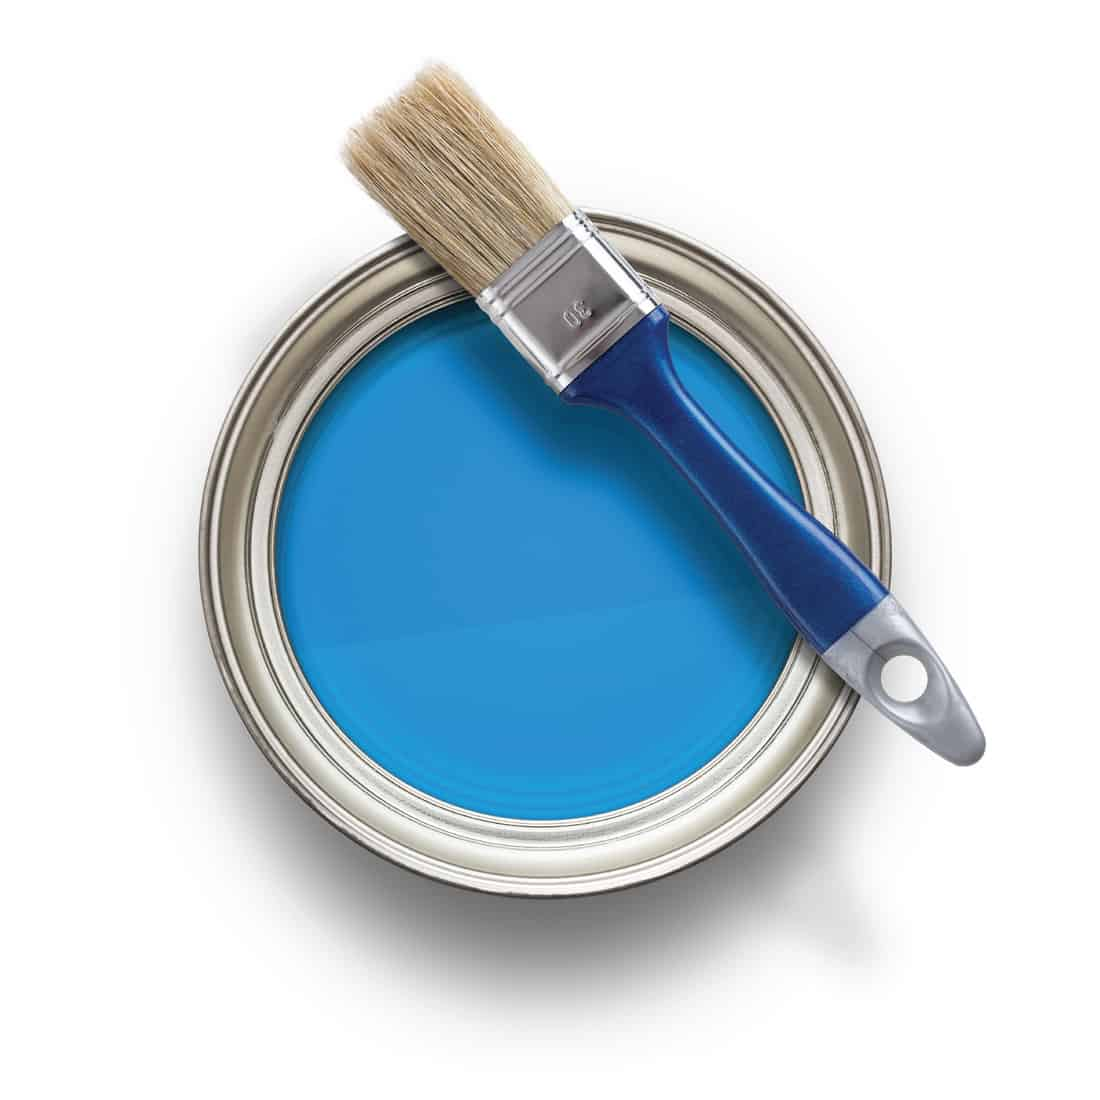 A can of blue paint with brush on the rim